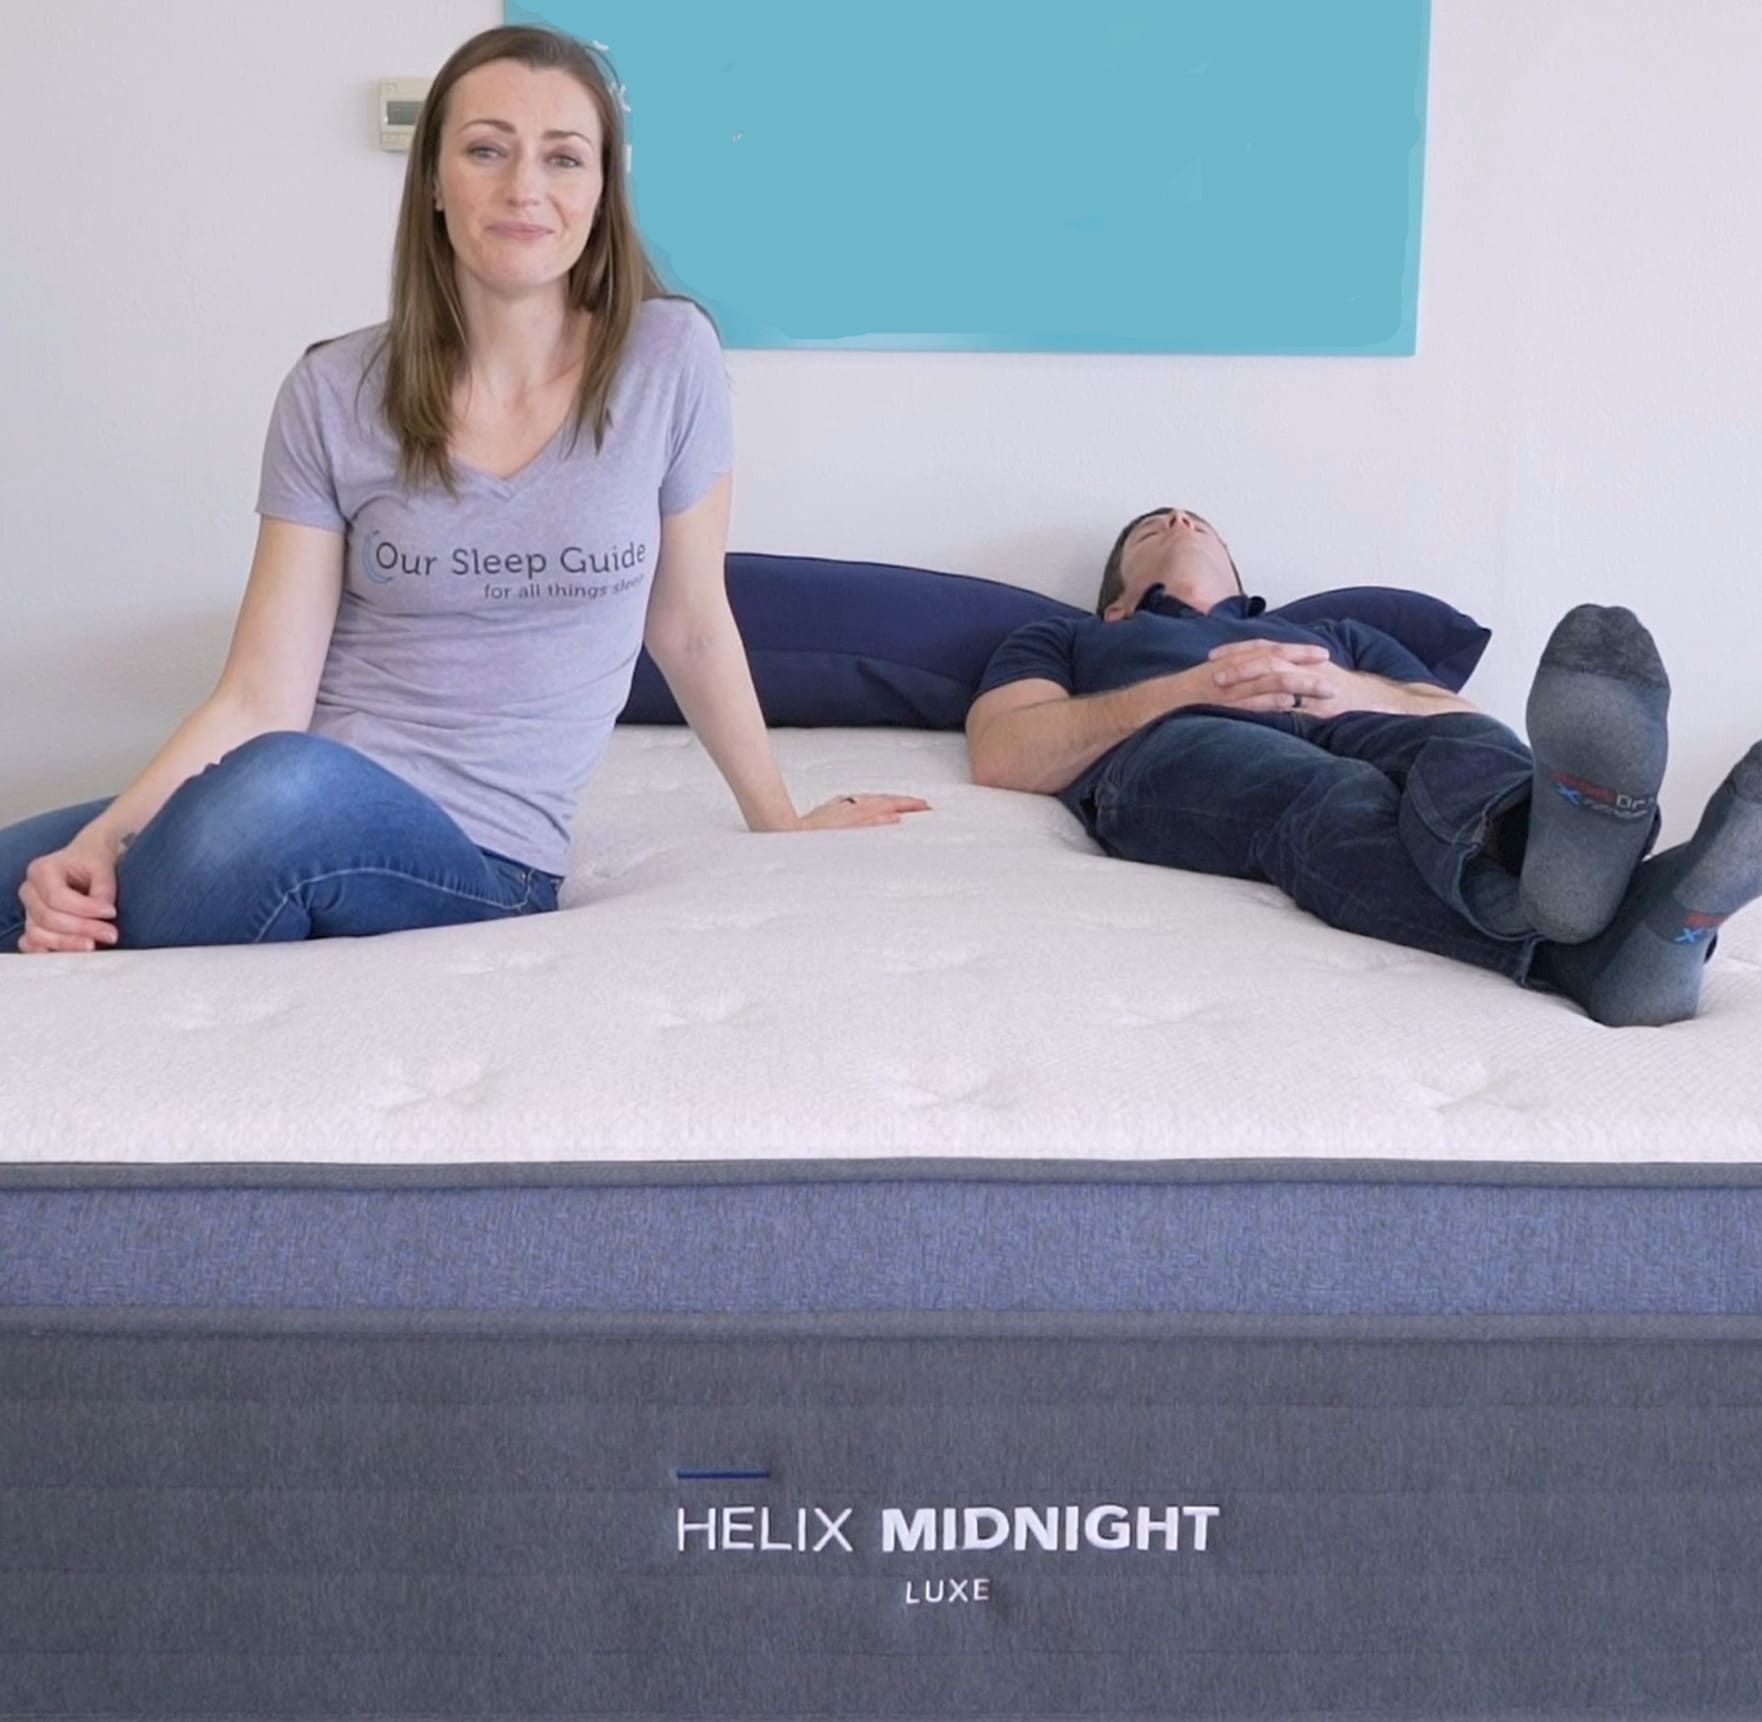 helix midnight mattress review